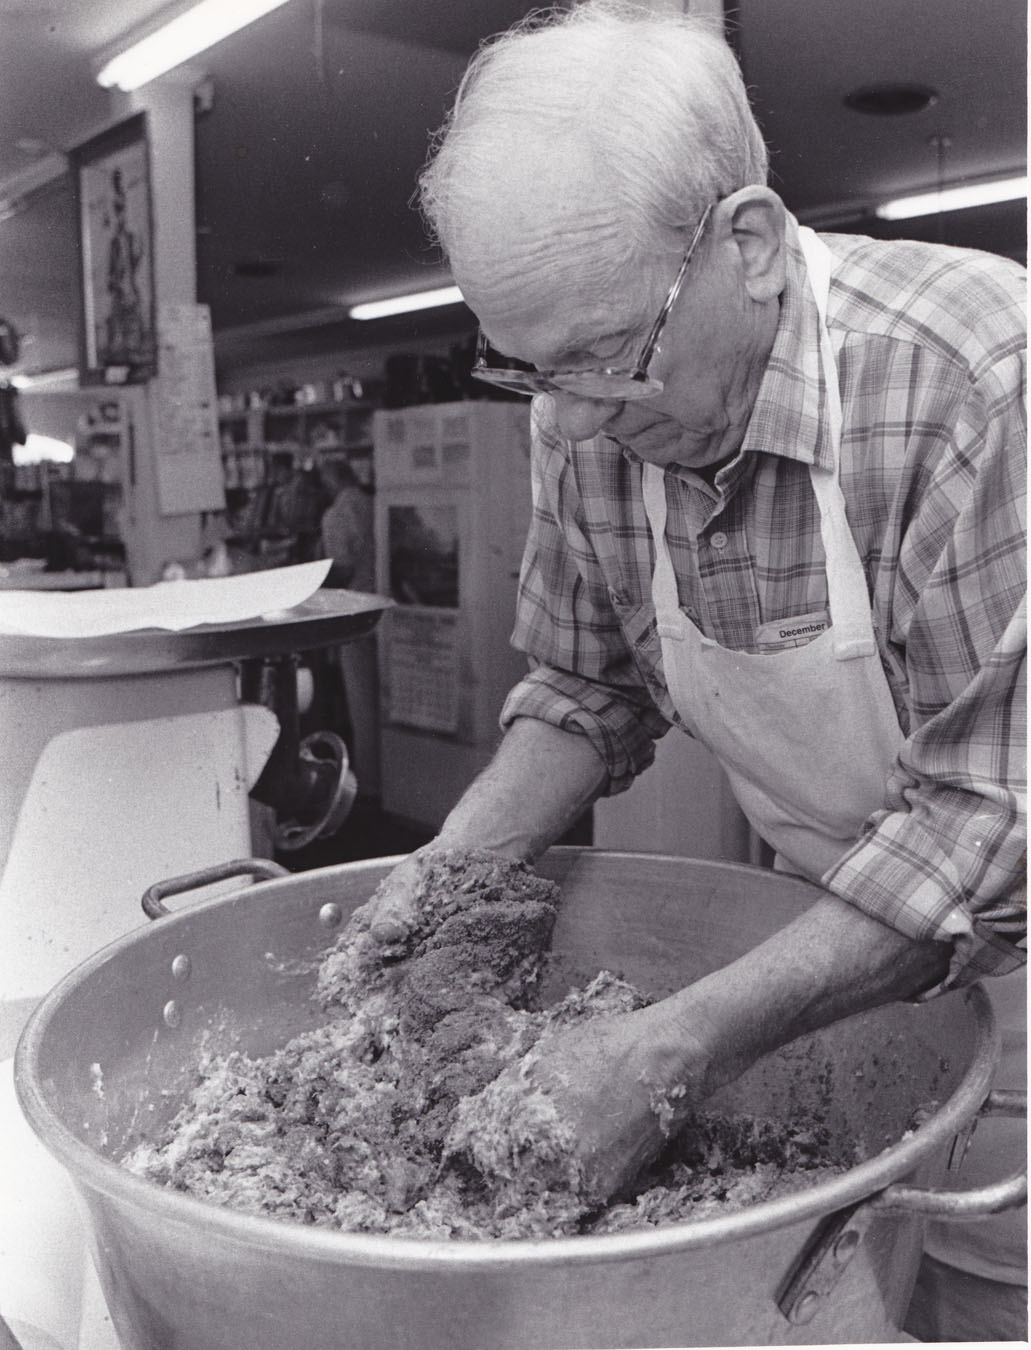 Roger Wilson making his well known pork sausage. Photo taken in early 1980's and provided by his family.